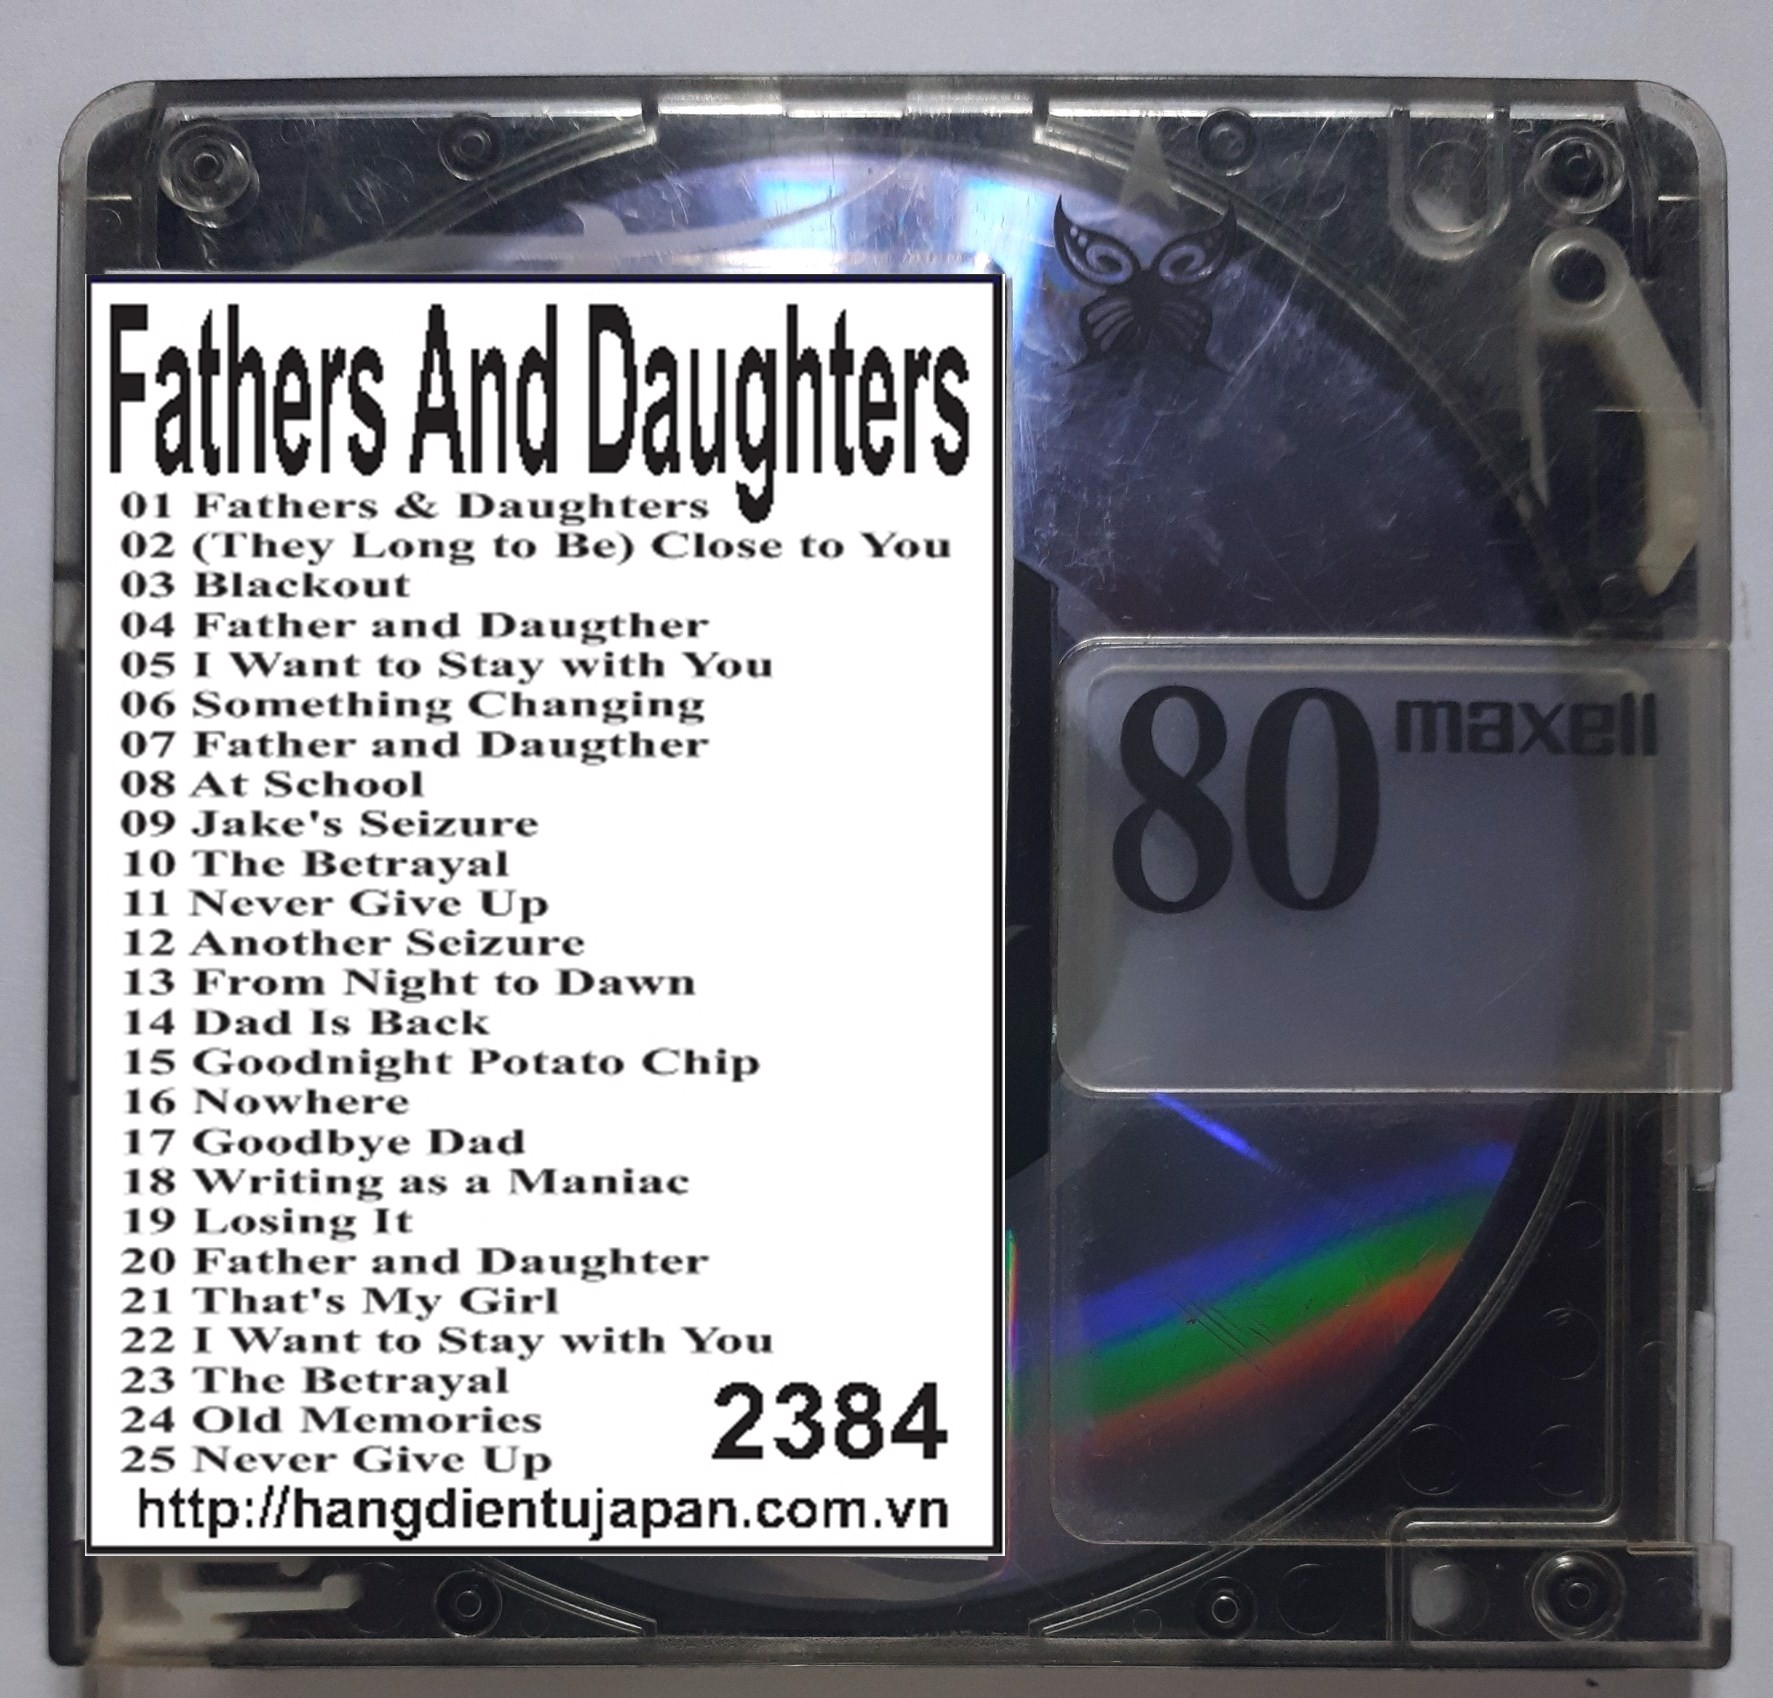 2384. Richard Clayderman & Michael Bolton - Fathers and Daughters (Original Motion Picture Soundtrack)